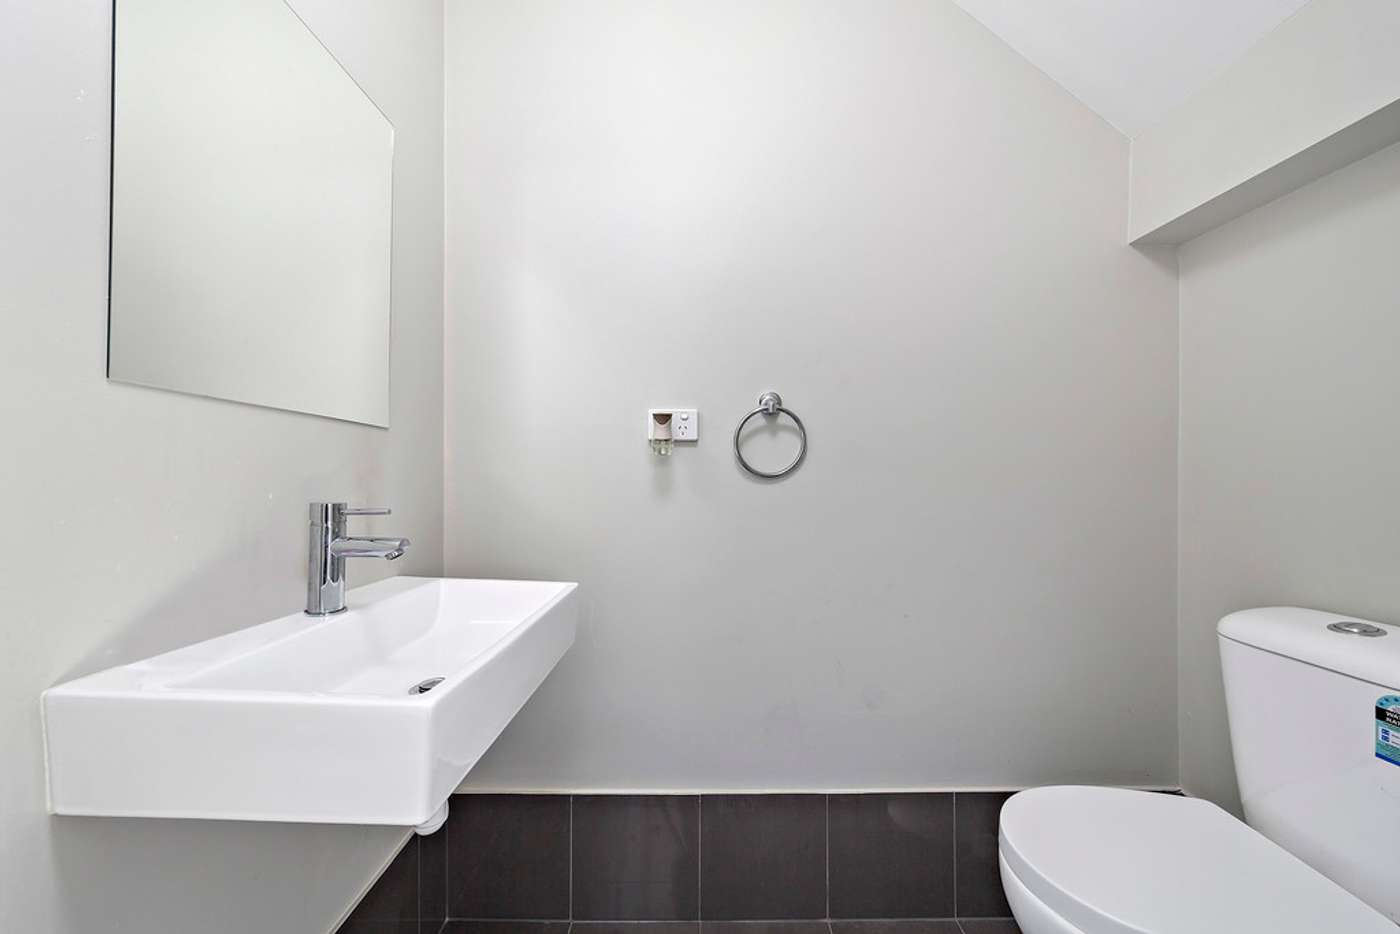 Sixth view of Homely apartment listing, 11/283-285 Parramatta Road, Leichhardt NSW 2040